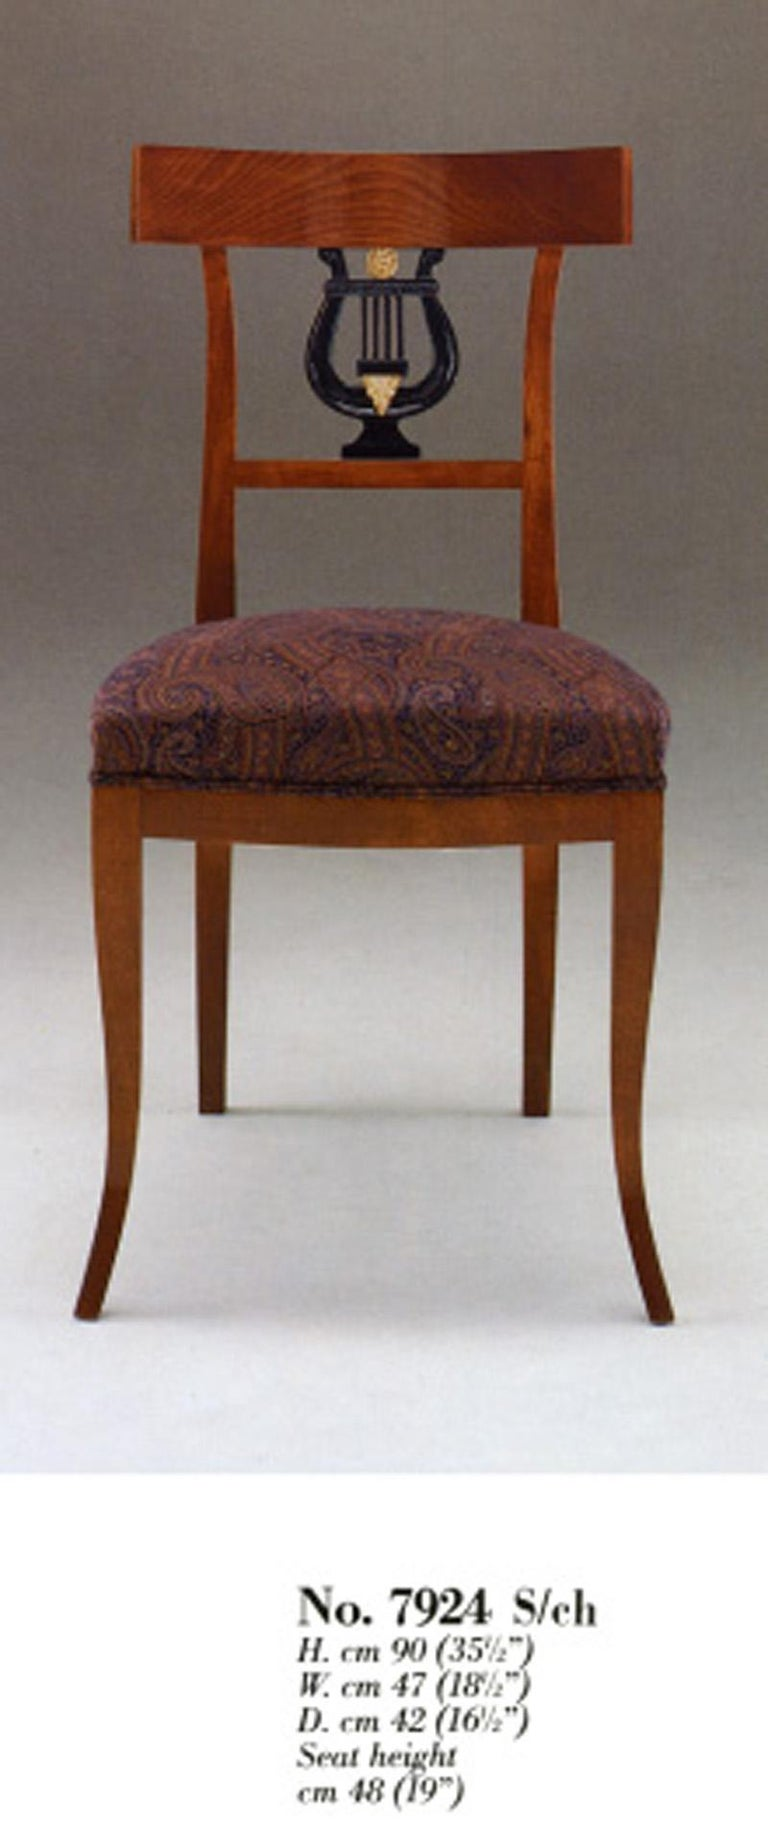 Hand-Carved 20th Century Neoclassical Dining Chair